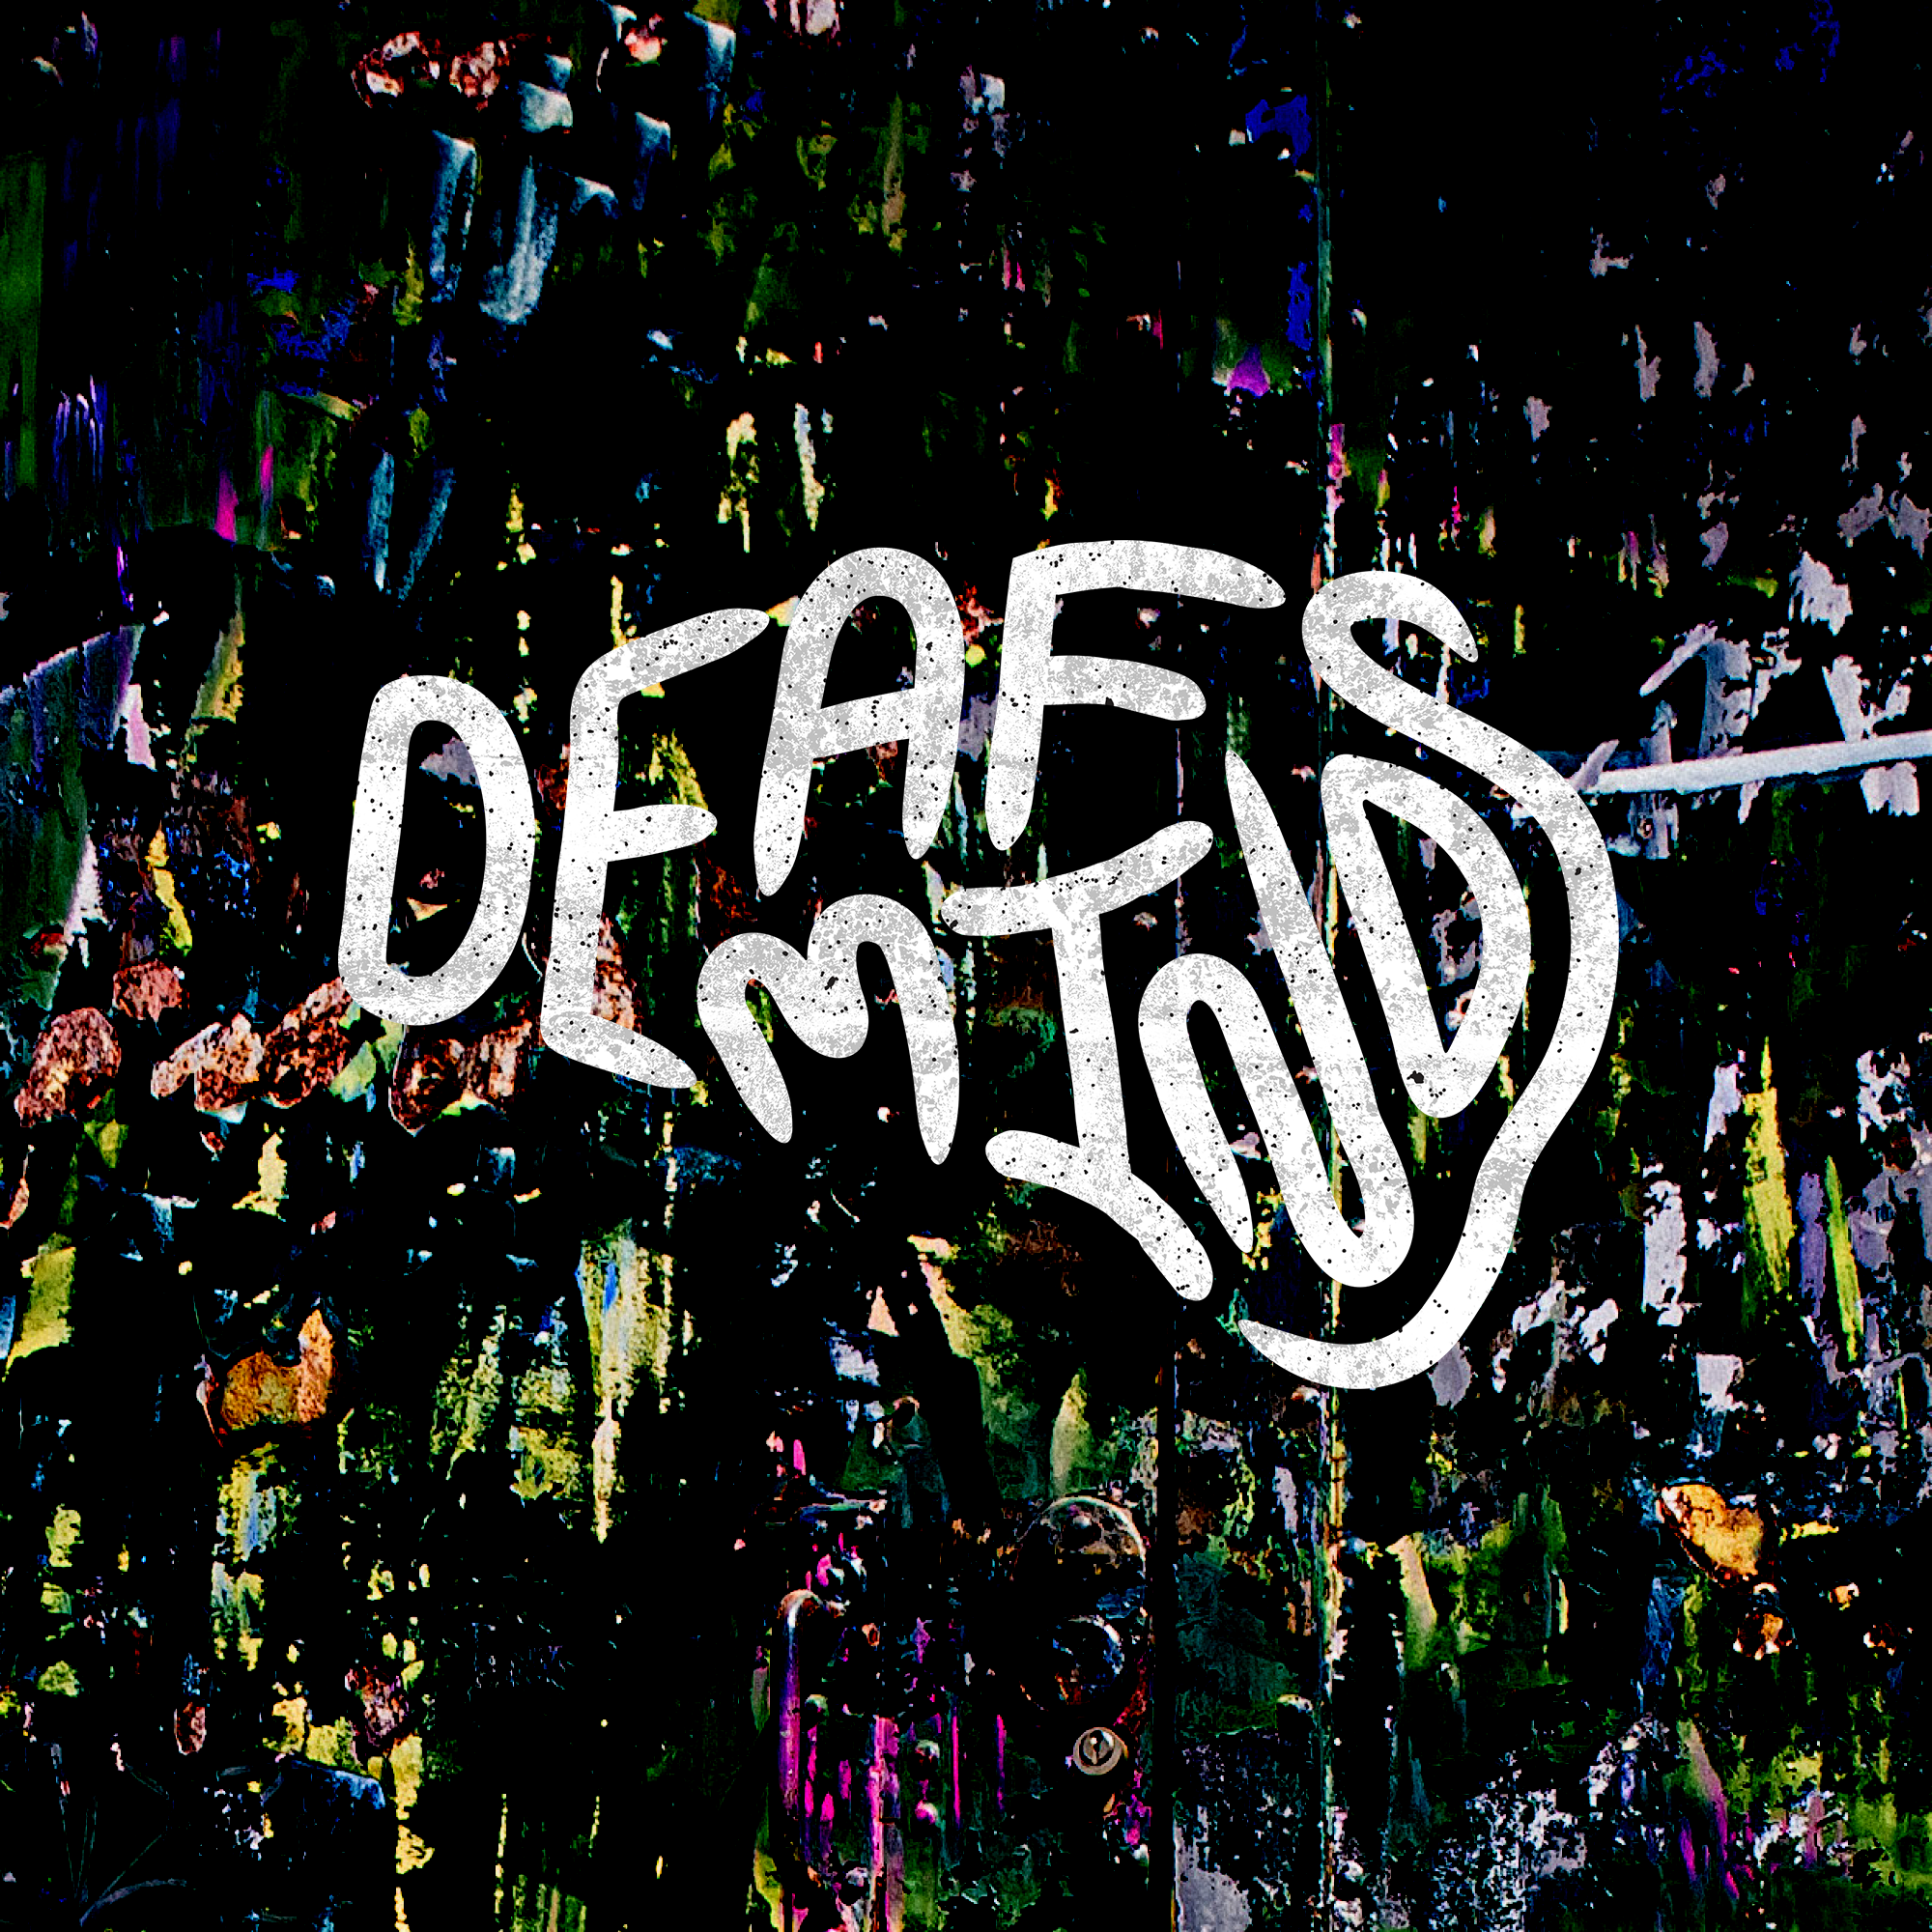 Deafminds - A.D.D.